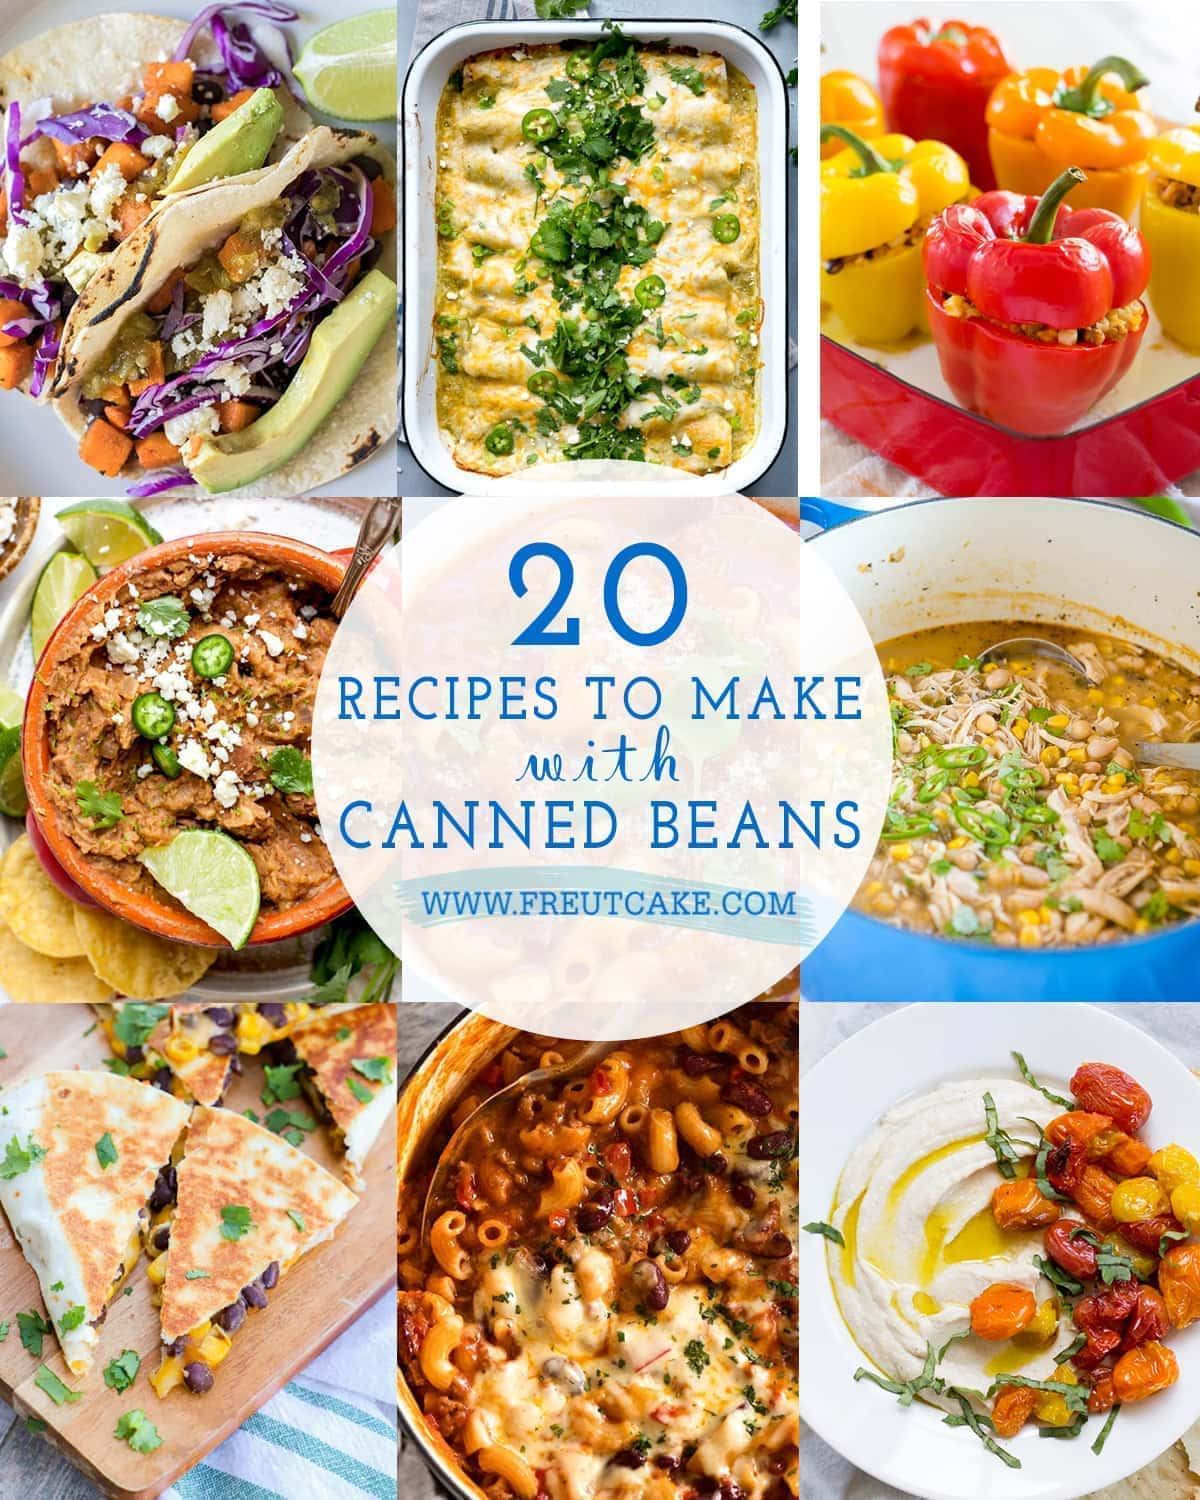 20 Recipes to Make with Canned Beans